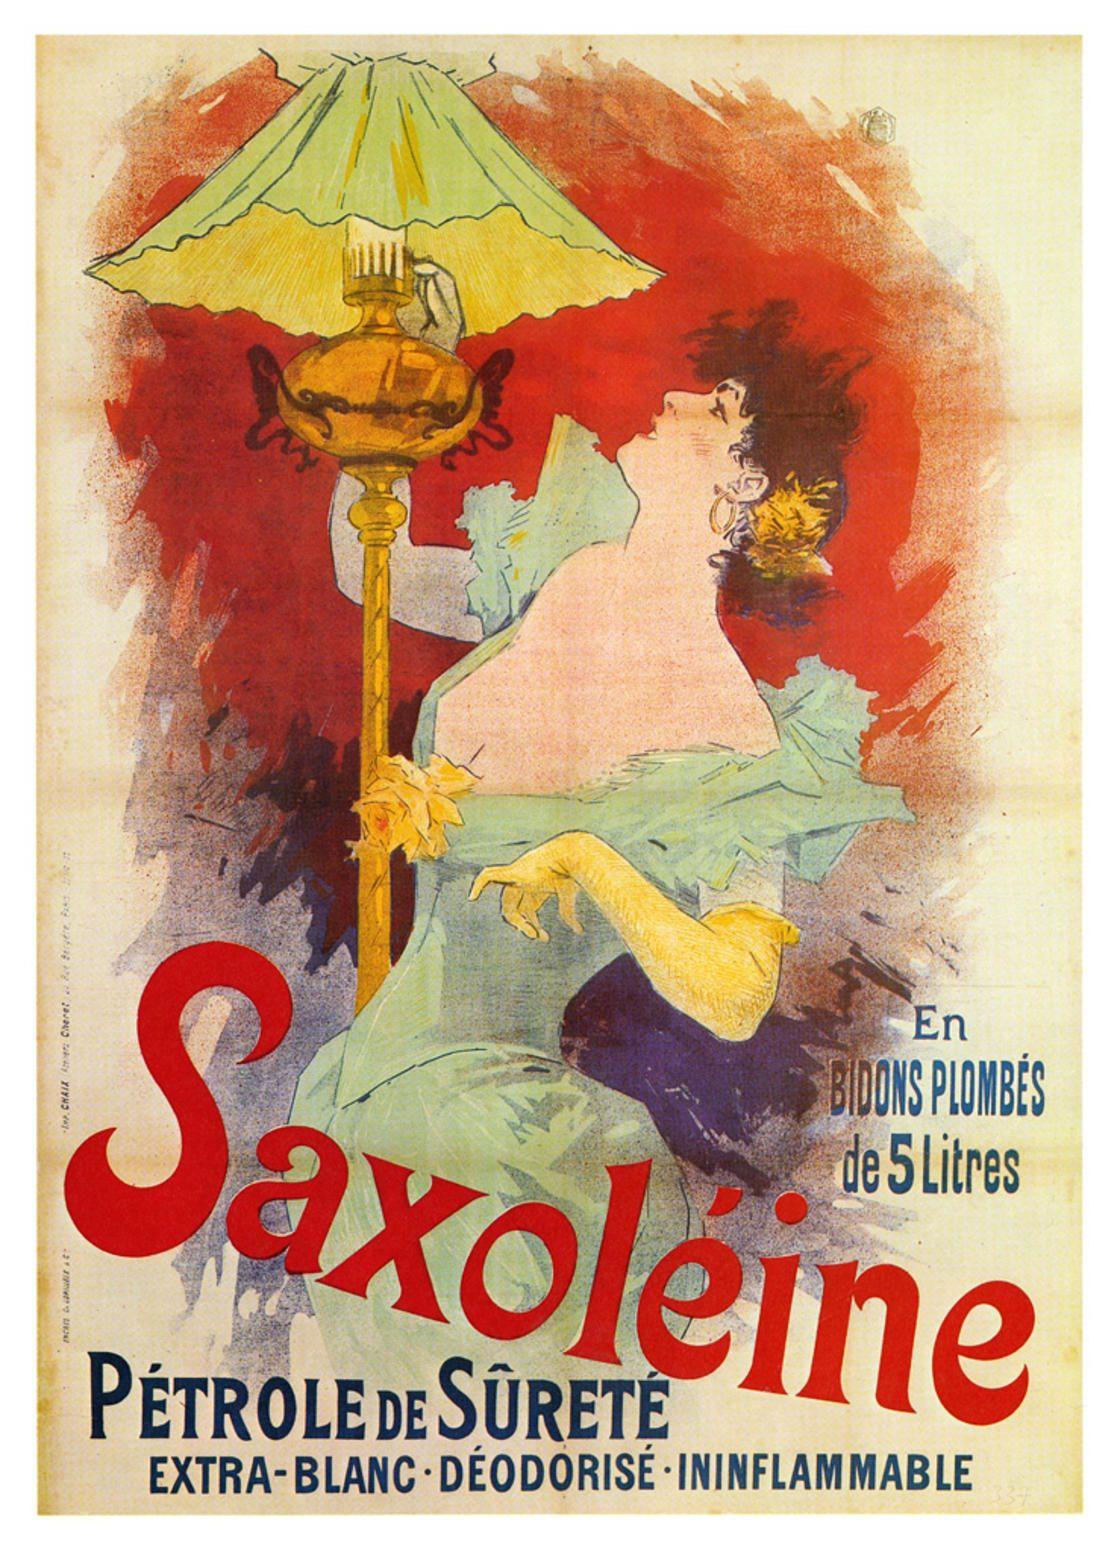 La Belle Epoque More Than 200 Vintage Posters Available For Free